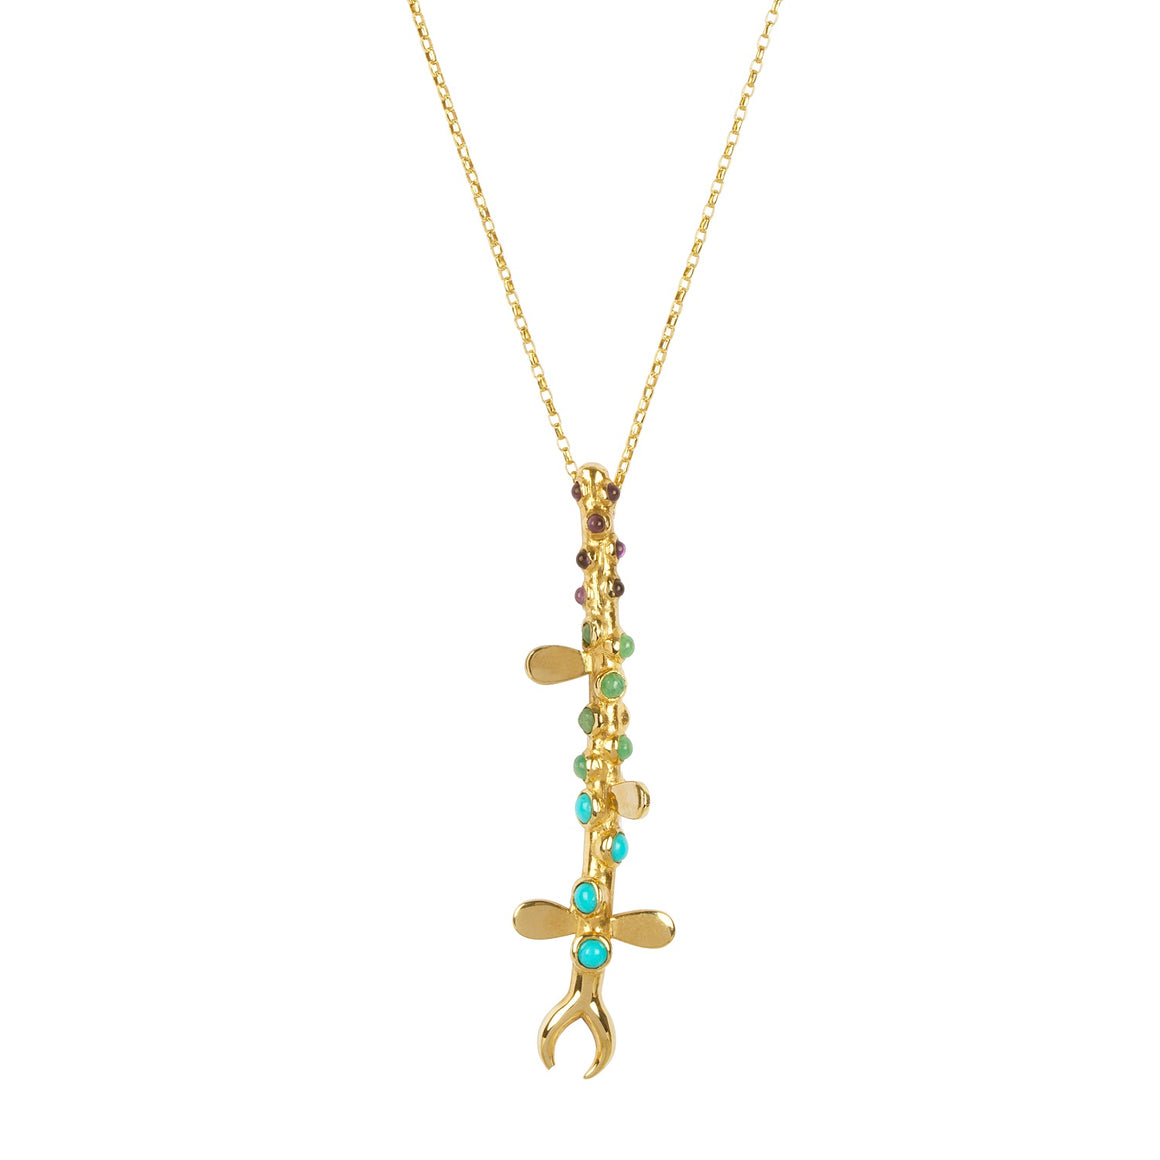 Metamorphosis Irish jewellery designer Ella Green turquoise amethyst amazonite yellow gold necklace insect jewelry